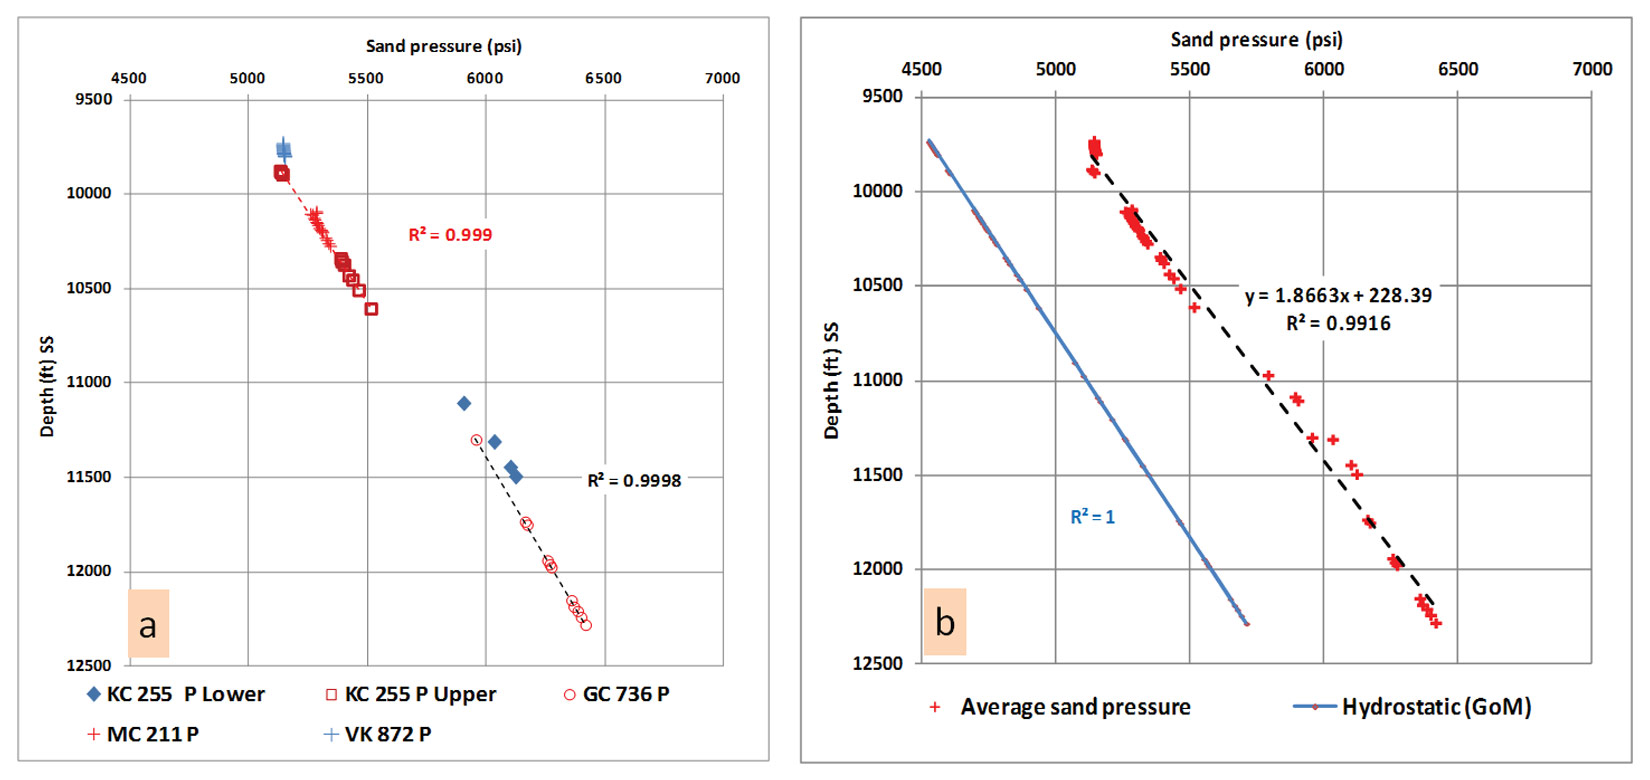 hight resolution of plot a displays zone b upper pleistocene sands pressure depth relationship in deep water wells the measured pressure data rft shows a shift in the